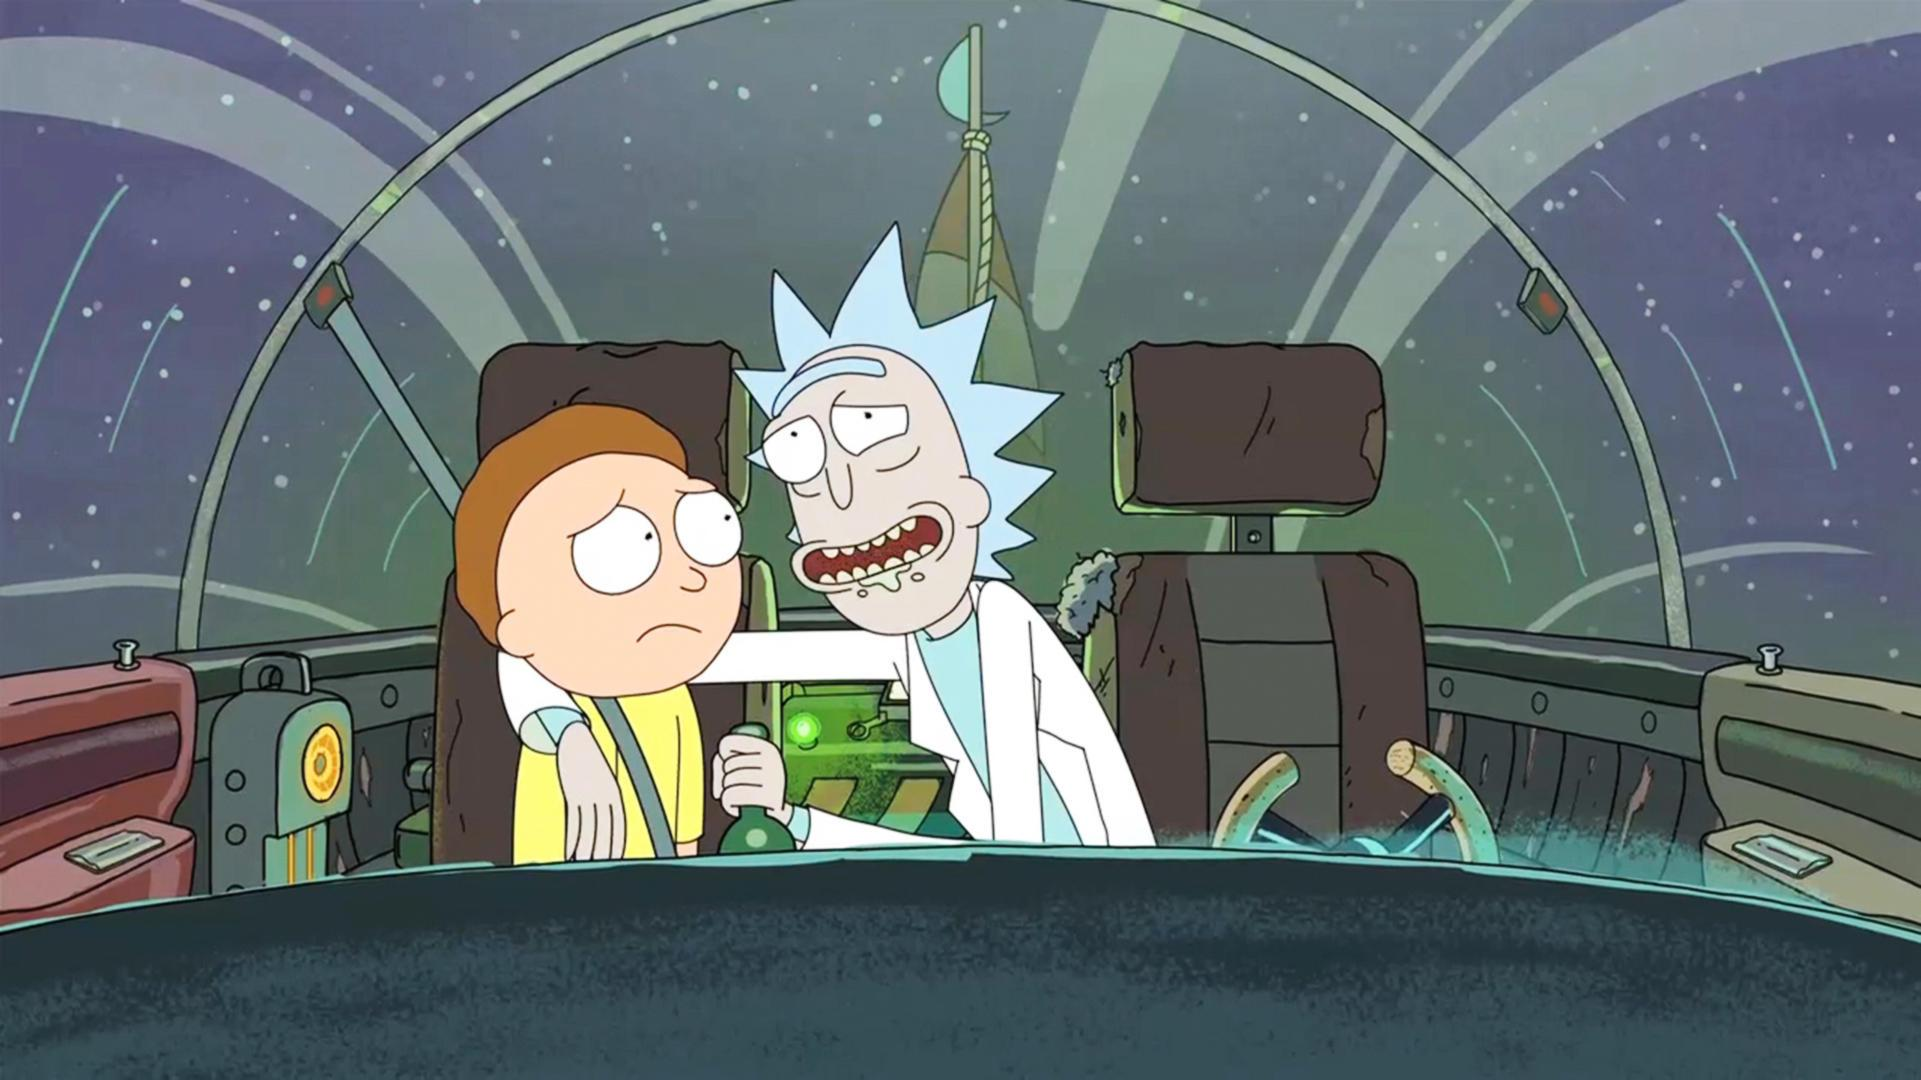 Rick and Morty Season 4 Episode 8 Trailer Breakdown Details you might have Missed